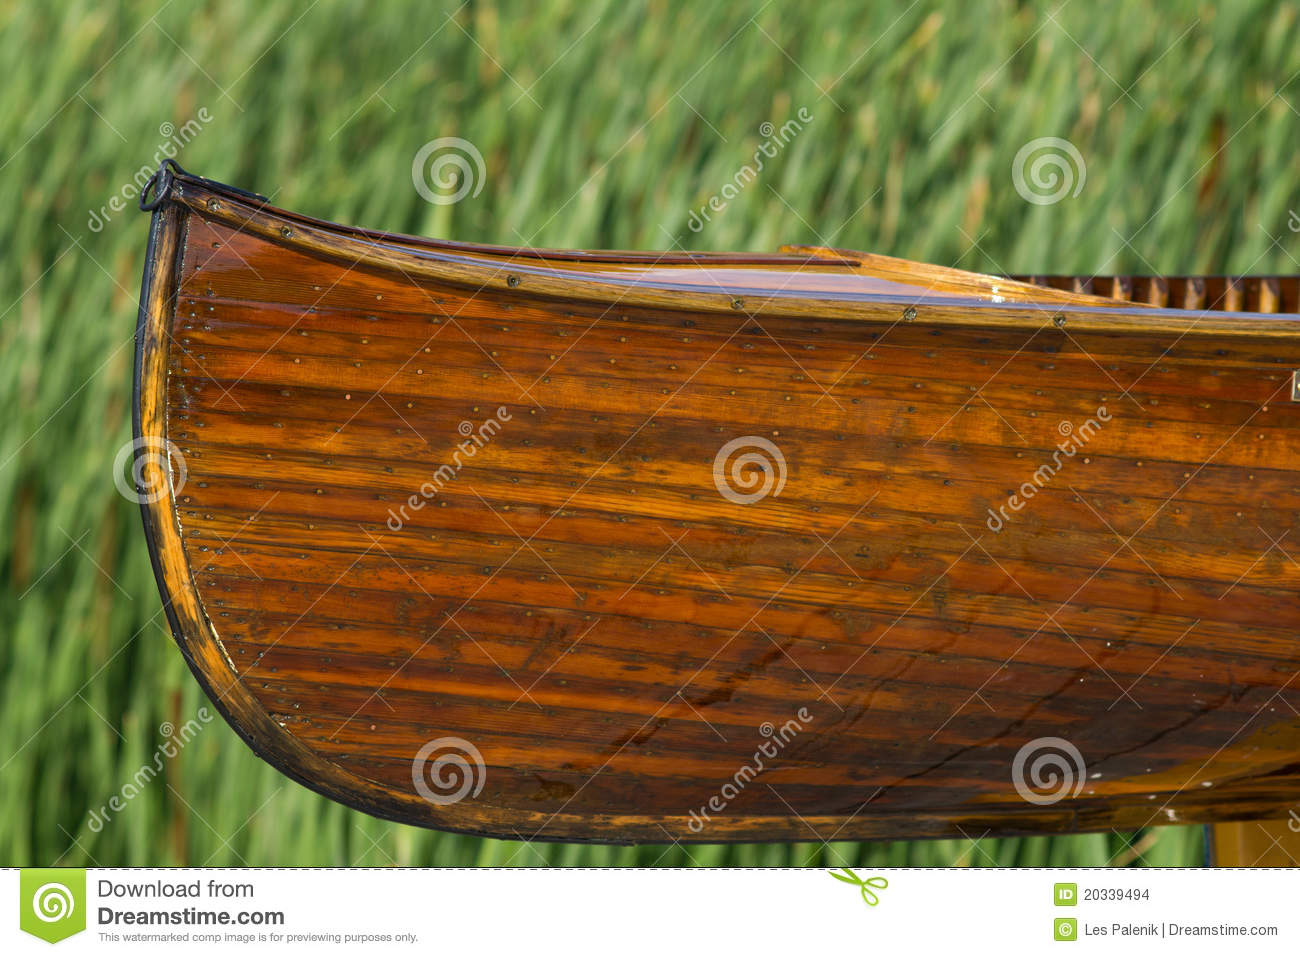 Cedar Strip Handmade Canoe Stock Images - Image: 20339494